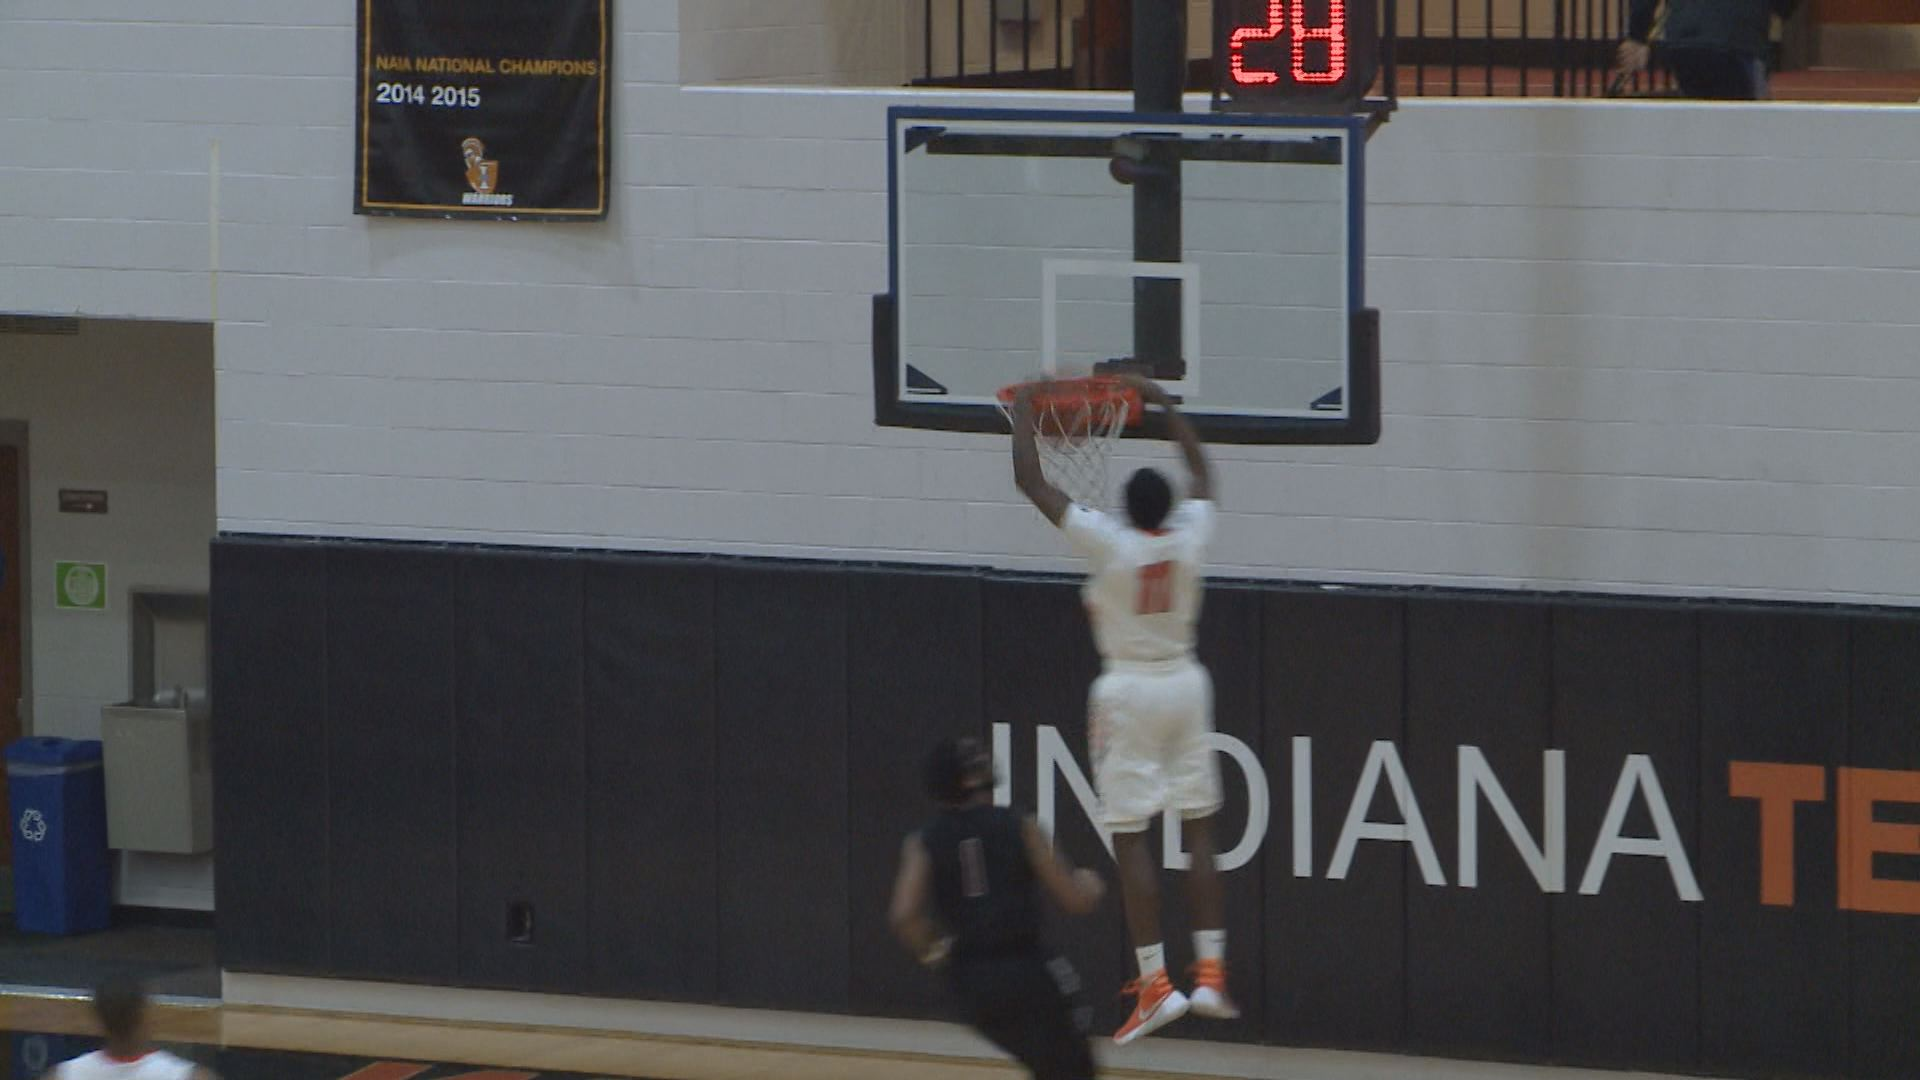 Indiana Tech Walls dunk_158678